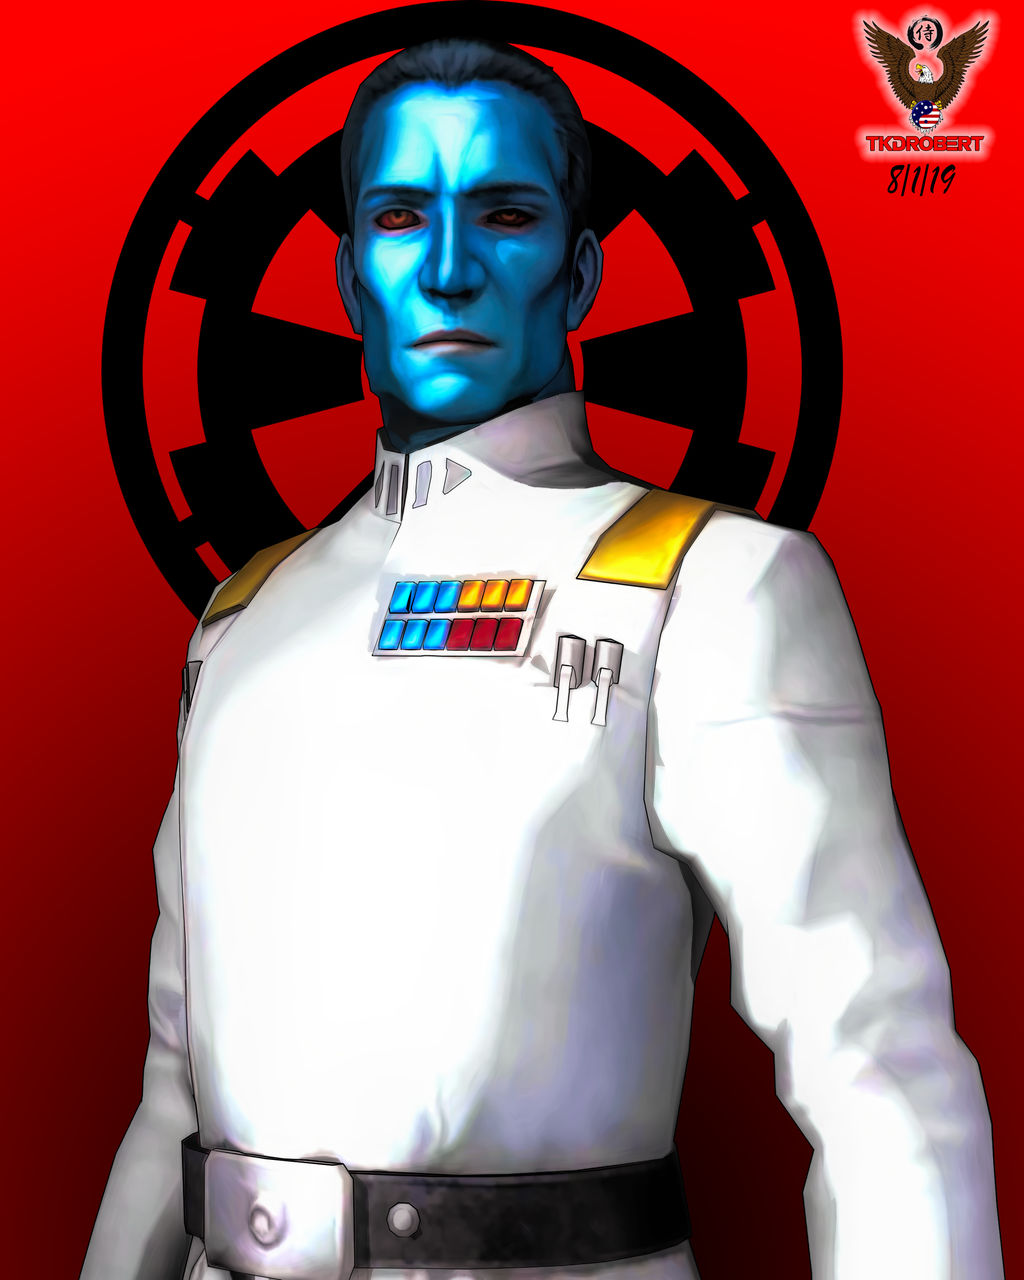 Grand Adniral Thrawn by tkdrobert